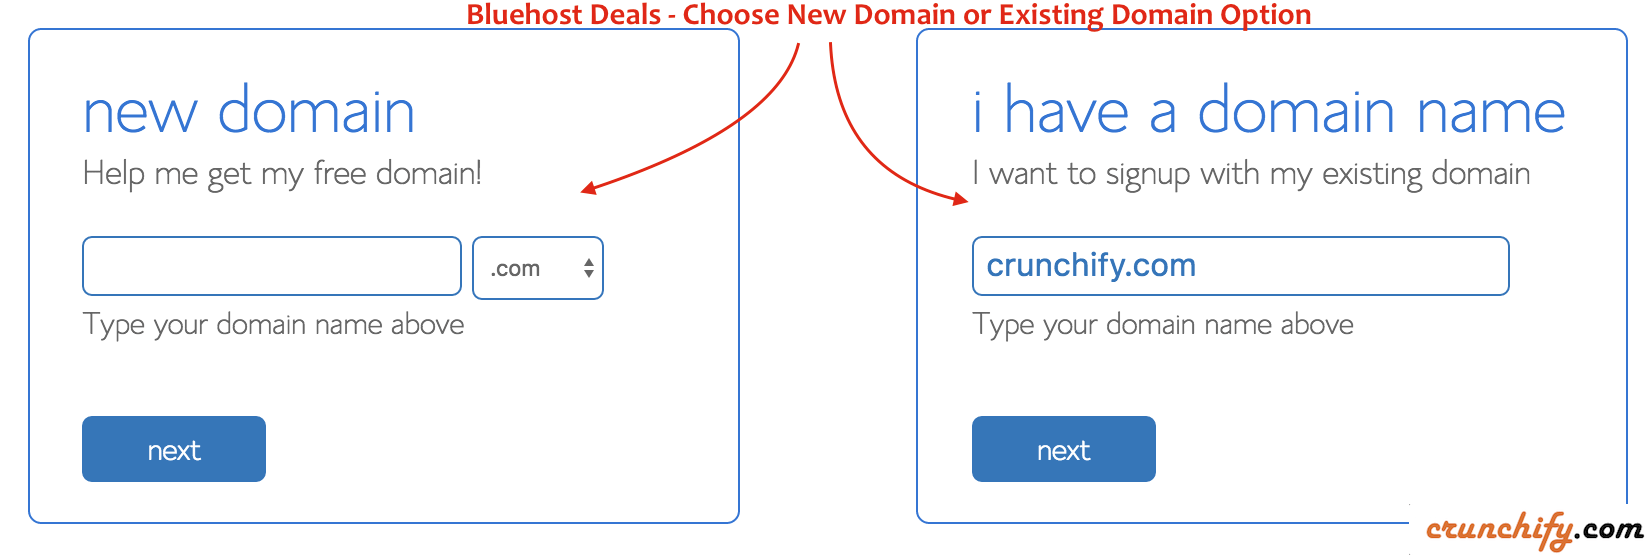 Bluehost Deals - Choose New Domain or Existing Domain Option